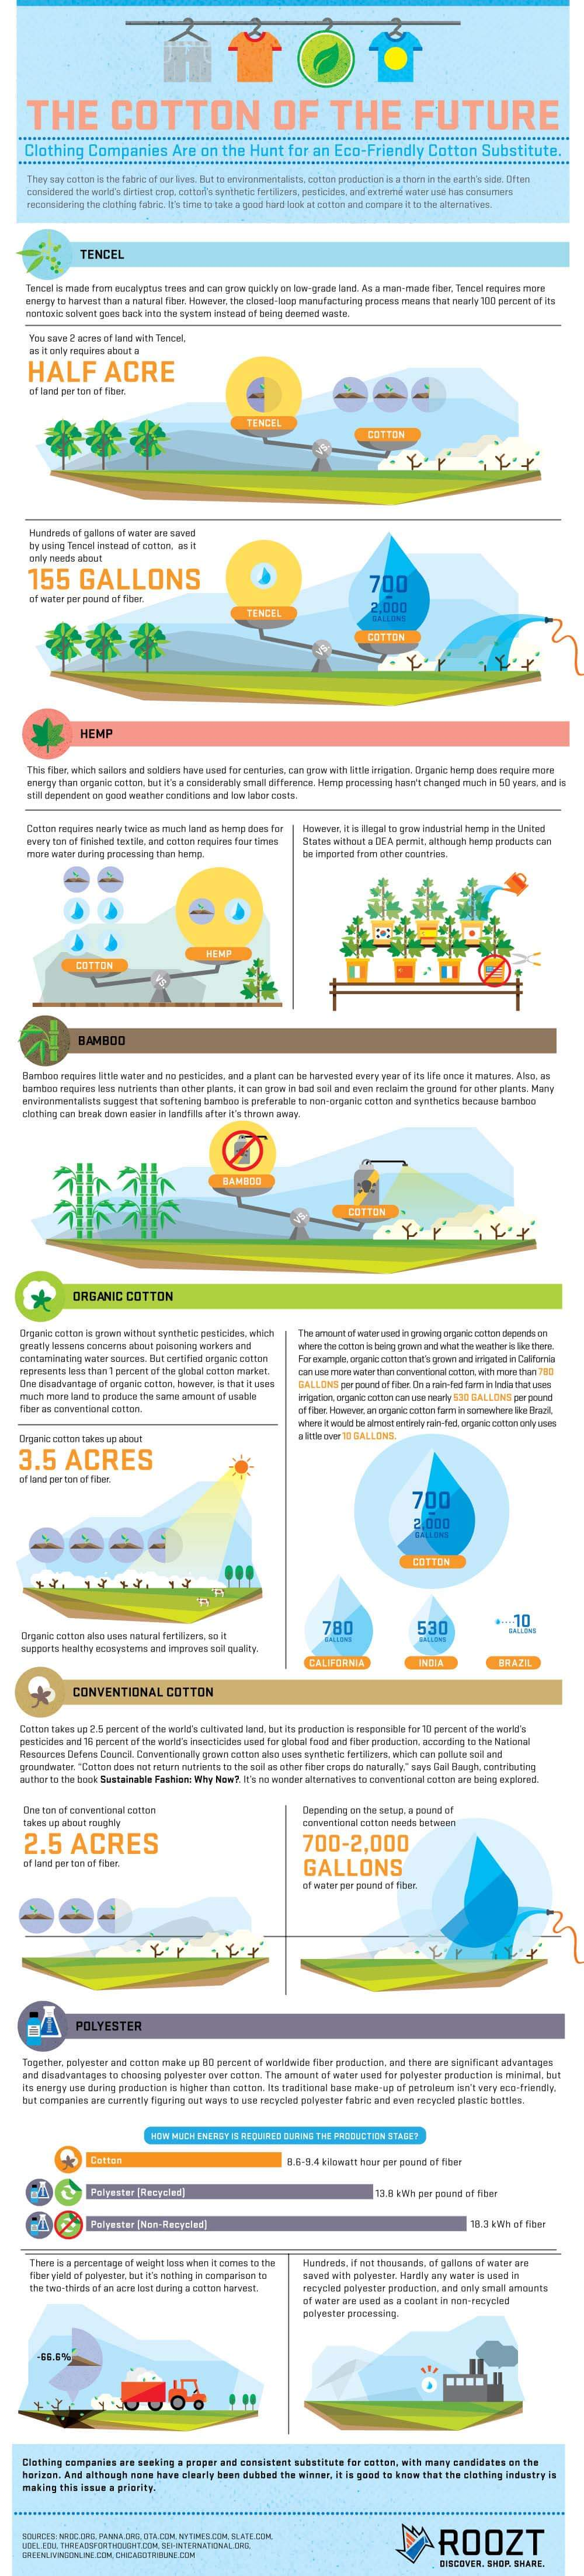 Cotton of the future infographic